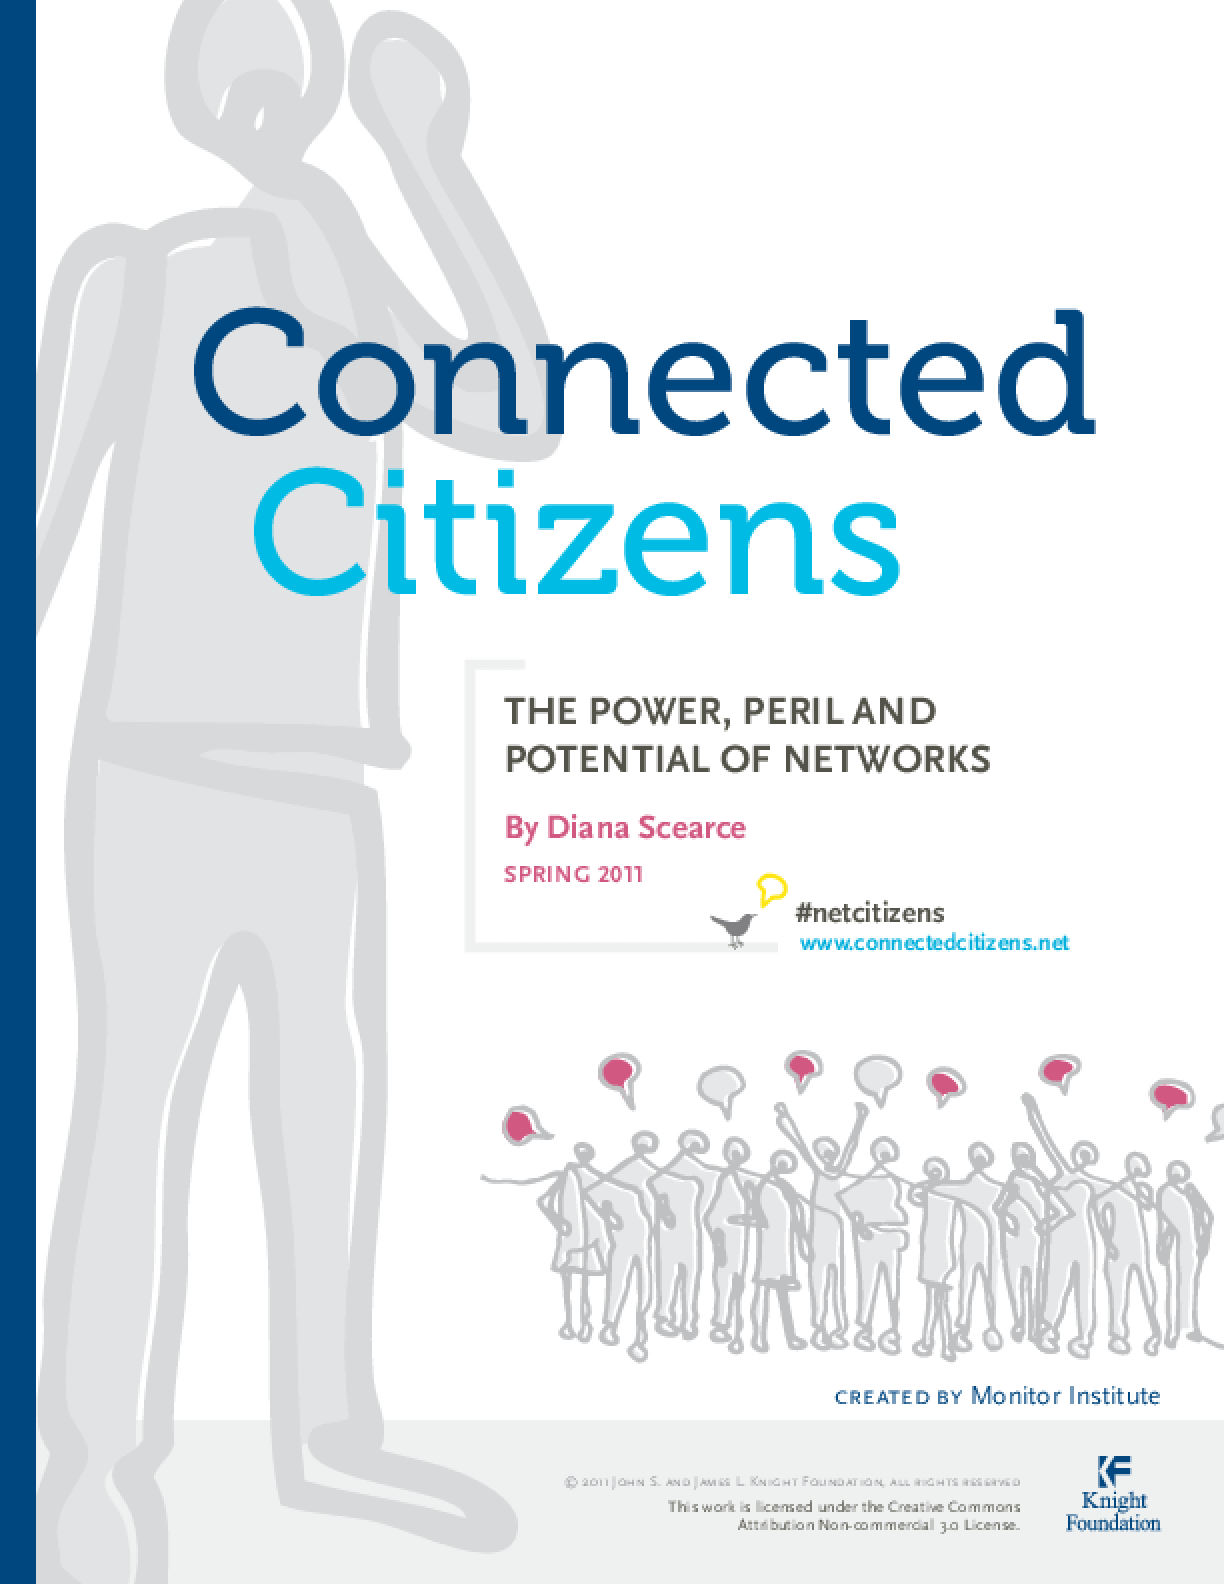 Connected Citizens: The Power, Peril and Potential of Networks